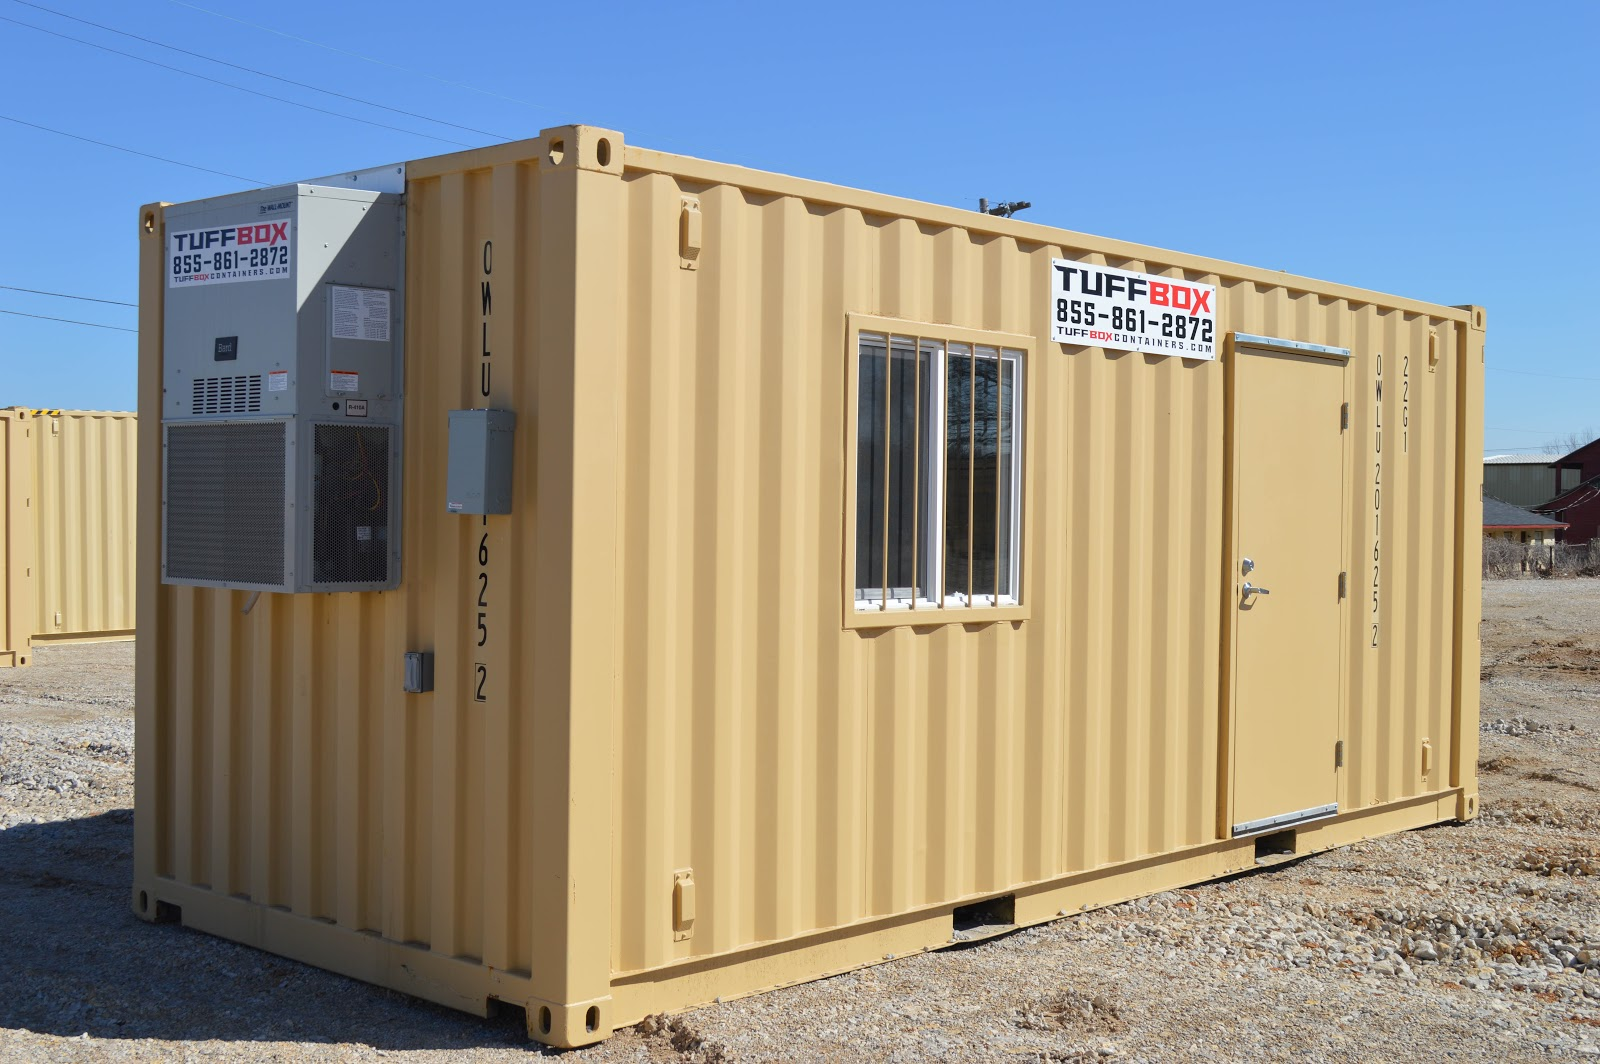 20-foot mobile office built out of a shipping container